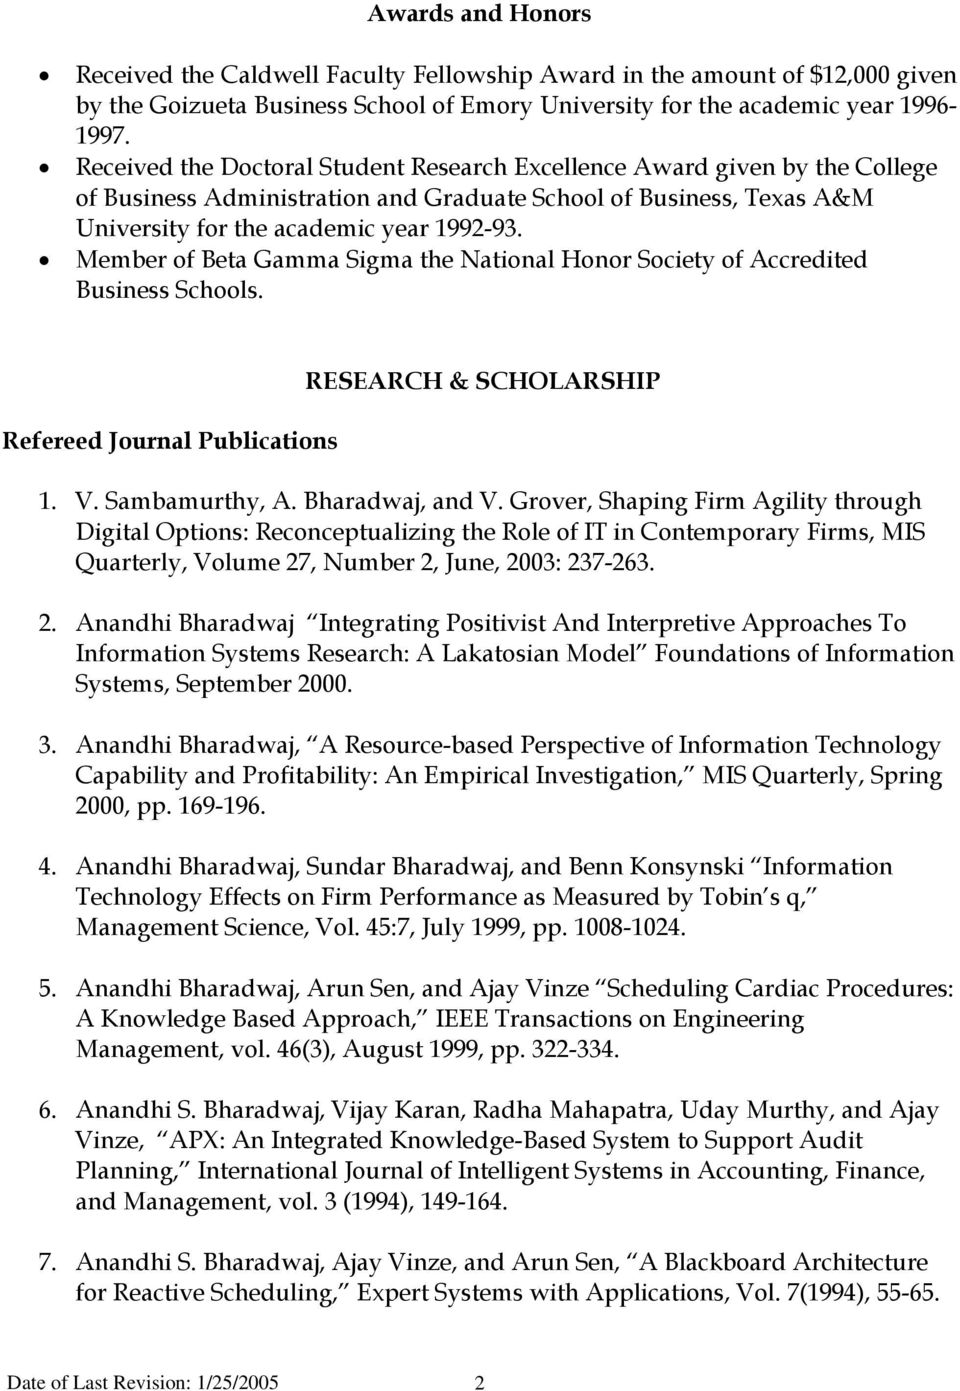 Member of Beta Gamma Sigma the National Honor Society of Accredited Business Schools. Refereed Journal Publications RESEARCH & SCHOLARSHIP 1. V. Sambamurthy, A. Bharadwaj, and V.